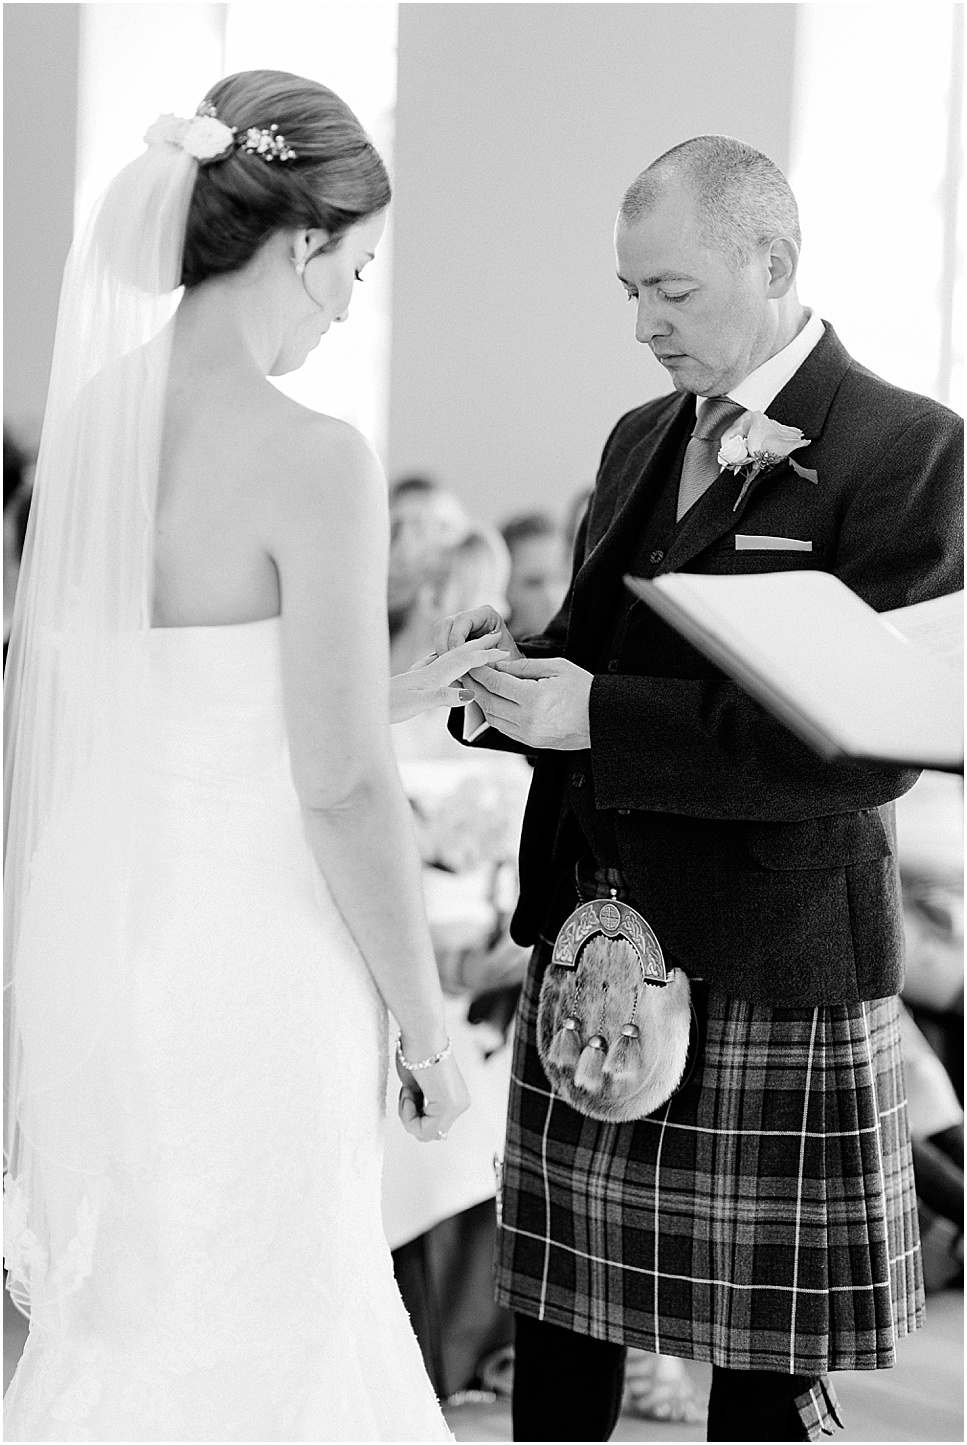 mareikemurray_wedding_photography_linlithgow_burgh_halls_042.jpg